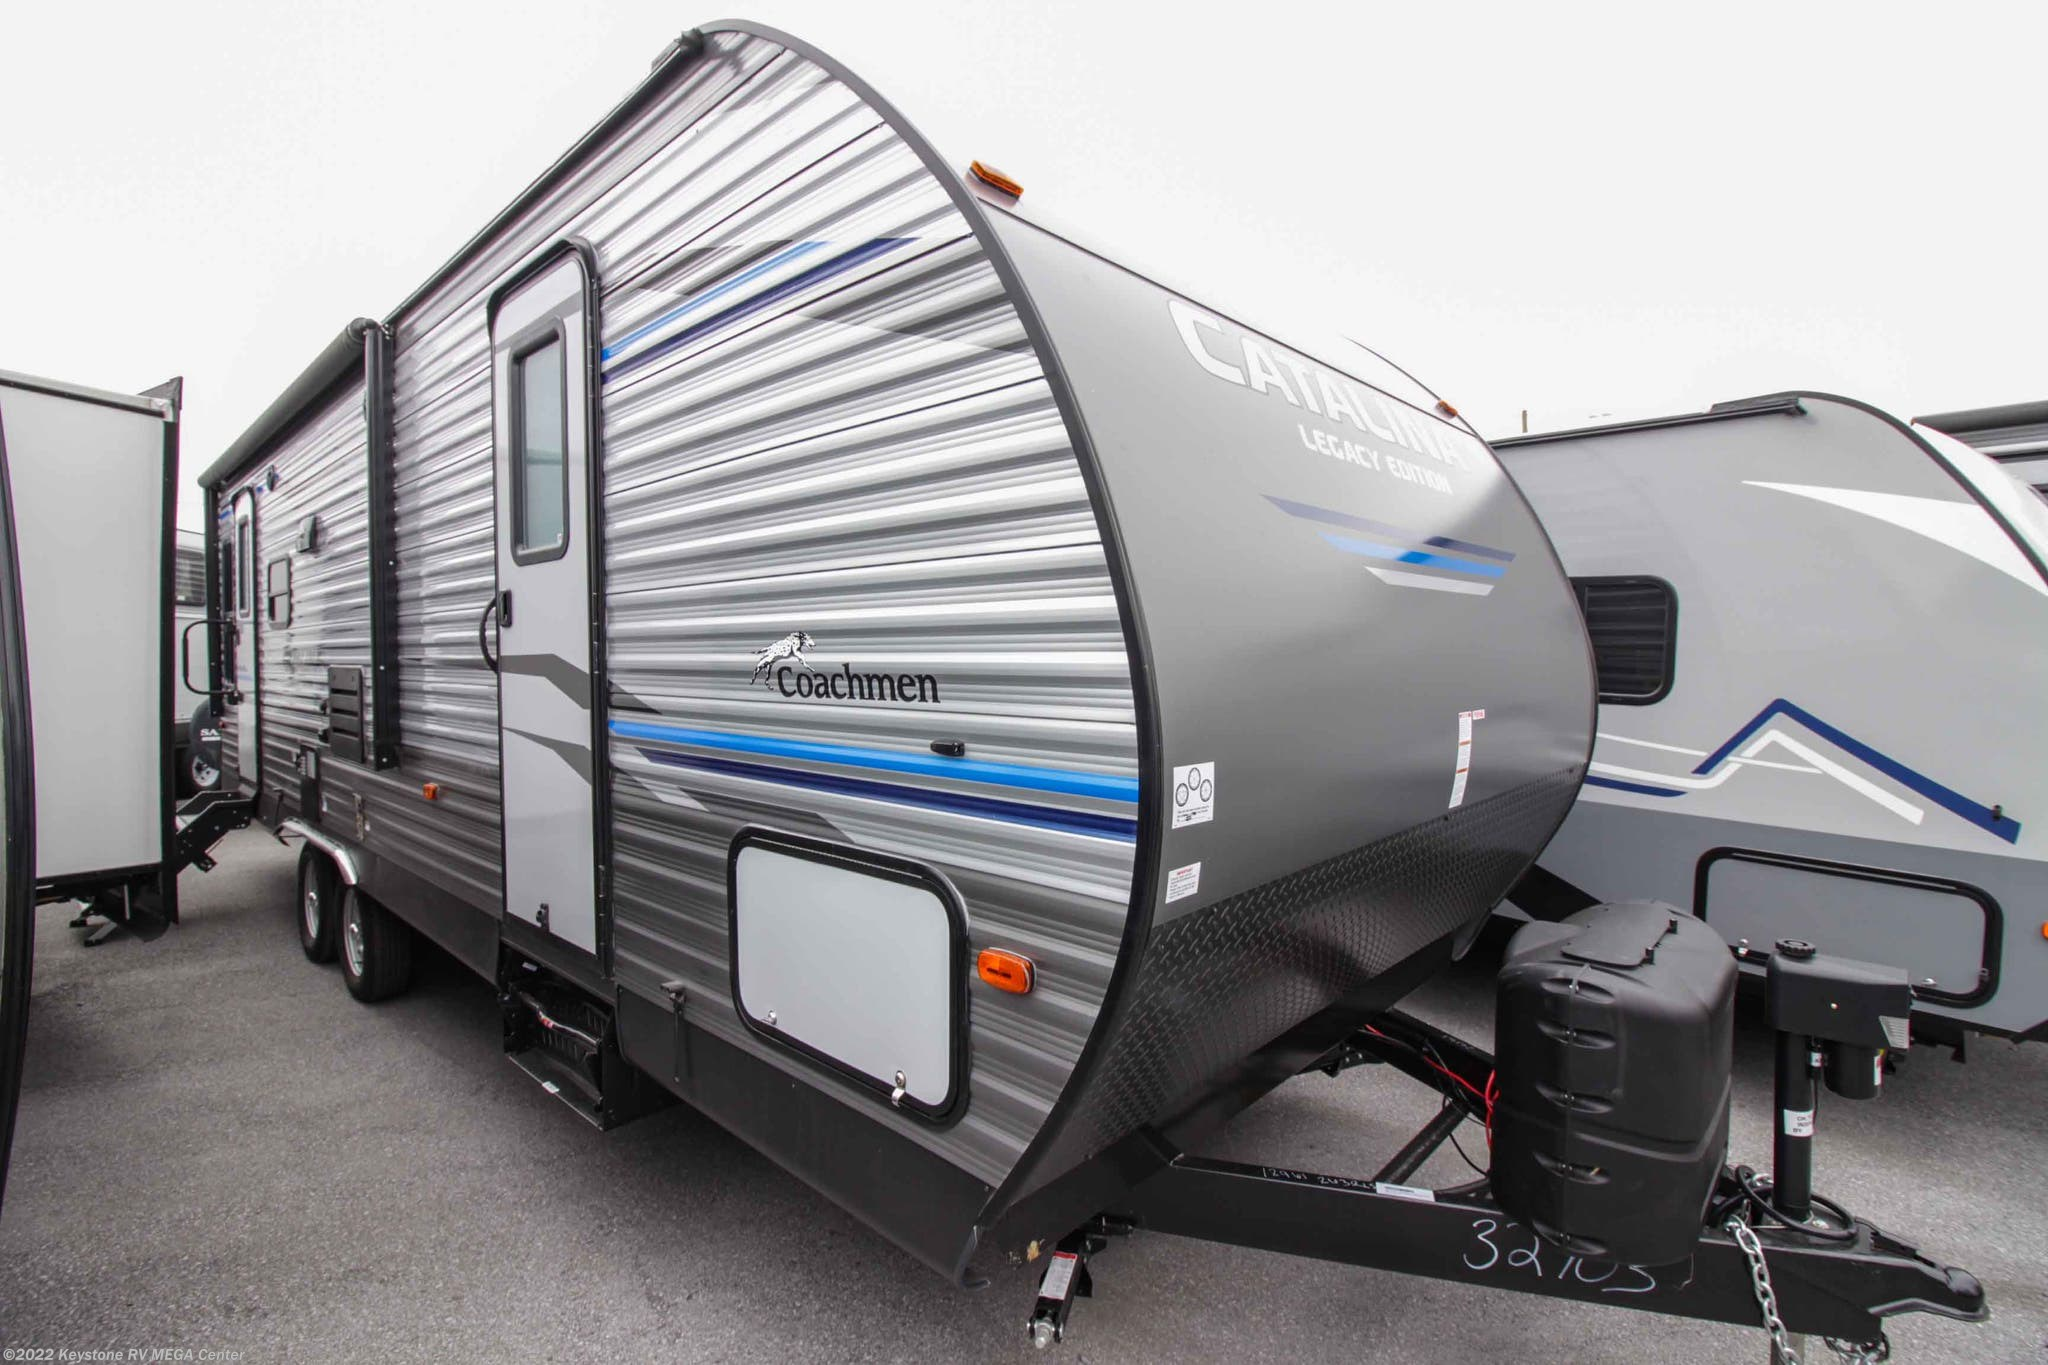 H12882 - 2019 Coachmen Catalina Legacy Edition303RKP for